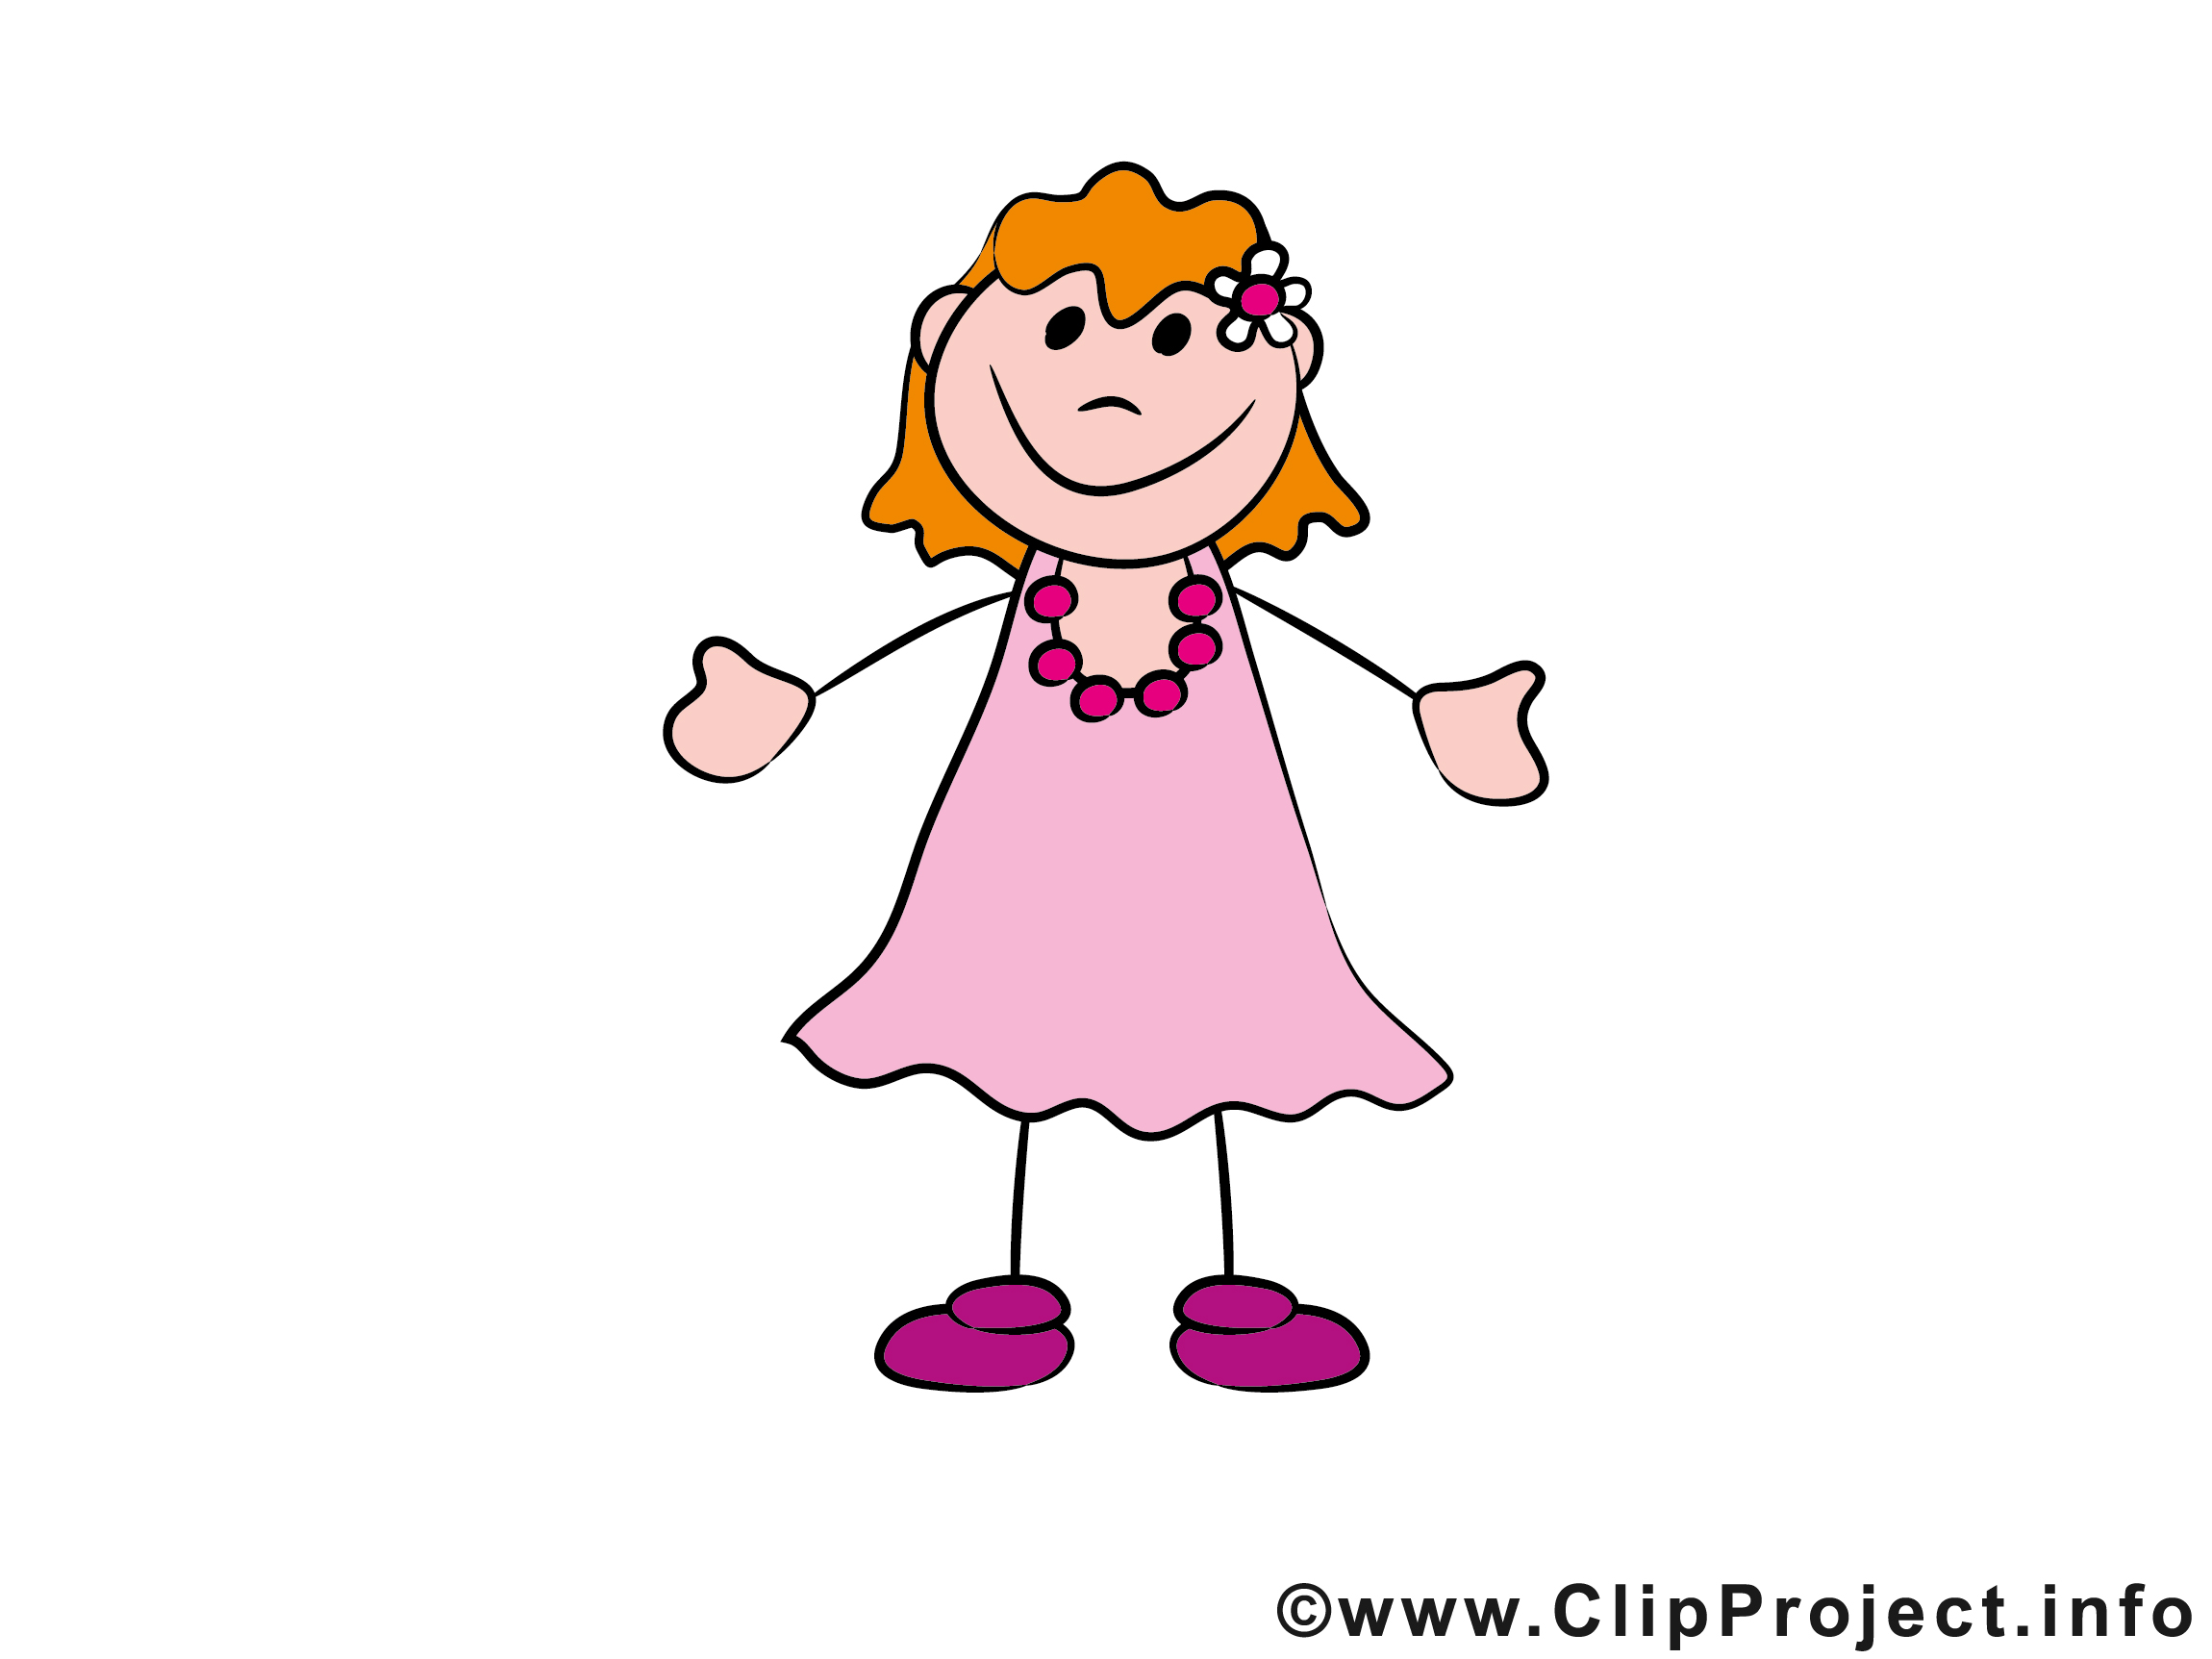 Clipart frau image freeuse library Clipart frau - ClipartFox image freeuse library